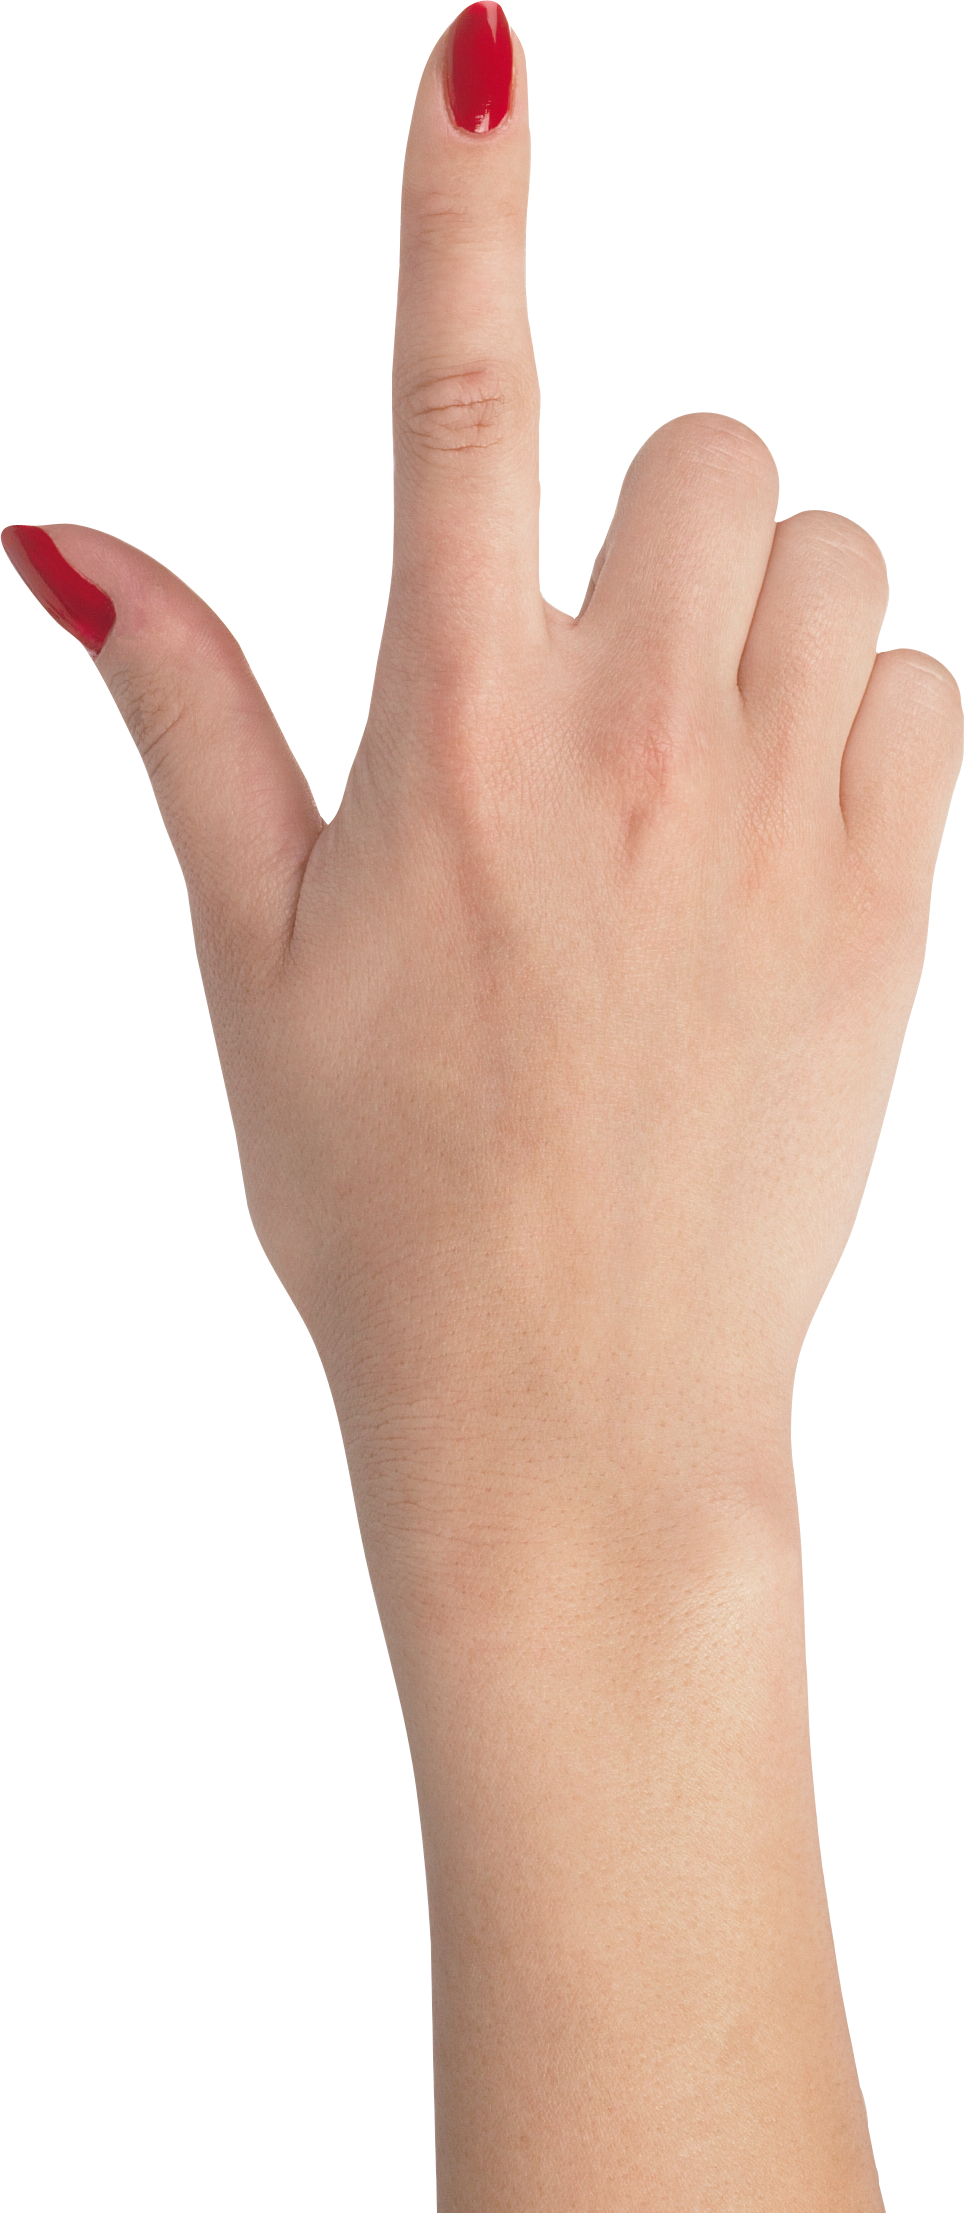 Fingers PNG - 5353